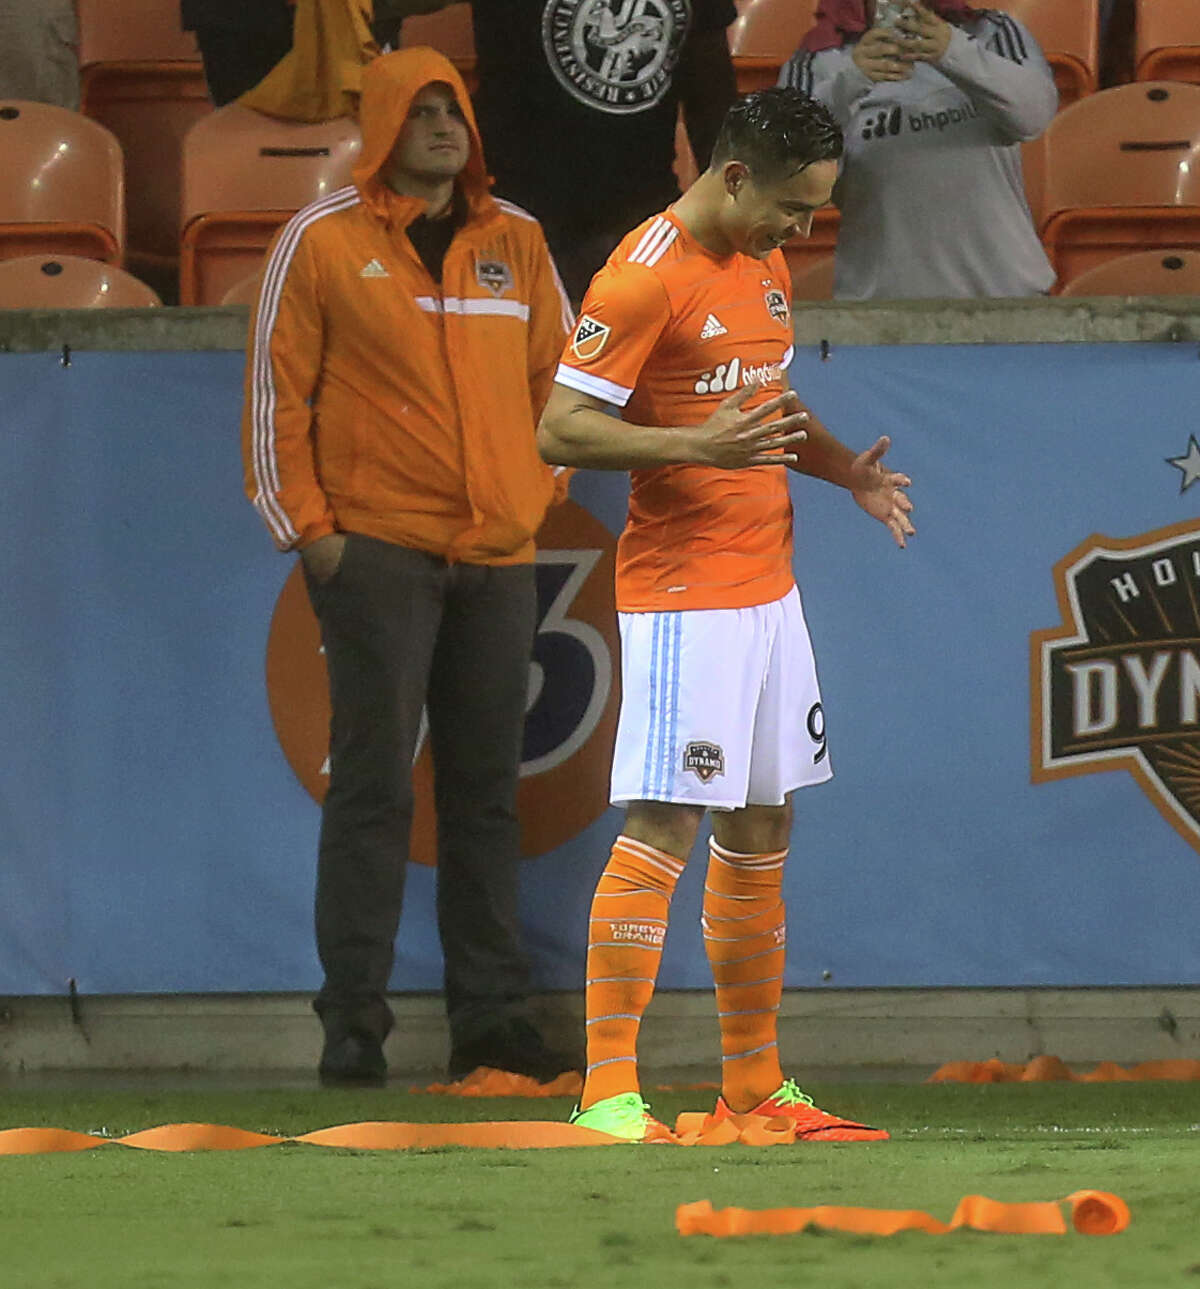 Houston Dynamo forward Erick Torres (9) does a robot dance to celebrate his score during the second half of the MLS soccer game against the Columbus Crew at BBVA Compass Stadium Saturday, March 11, 2017, in Houston. The Dynamos defeated the Crew 3-1. ( Yi-Chin Lee / Houston Chronicle )